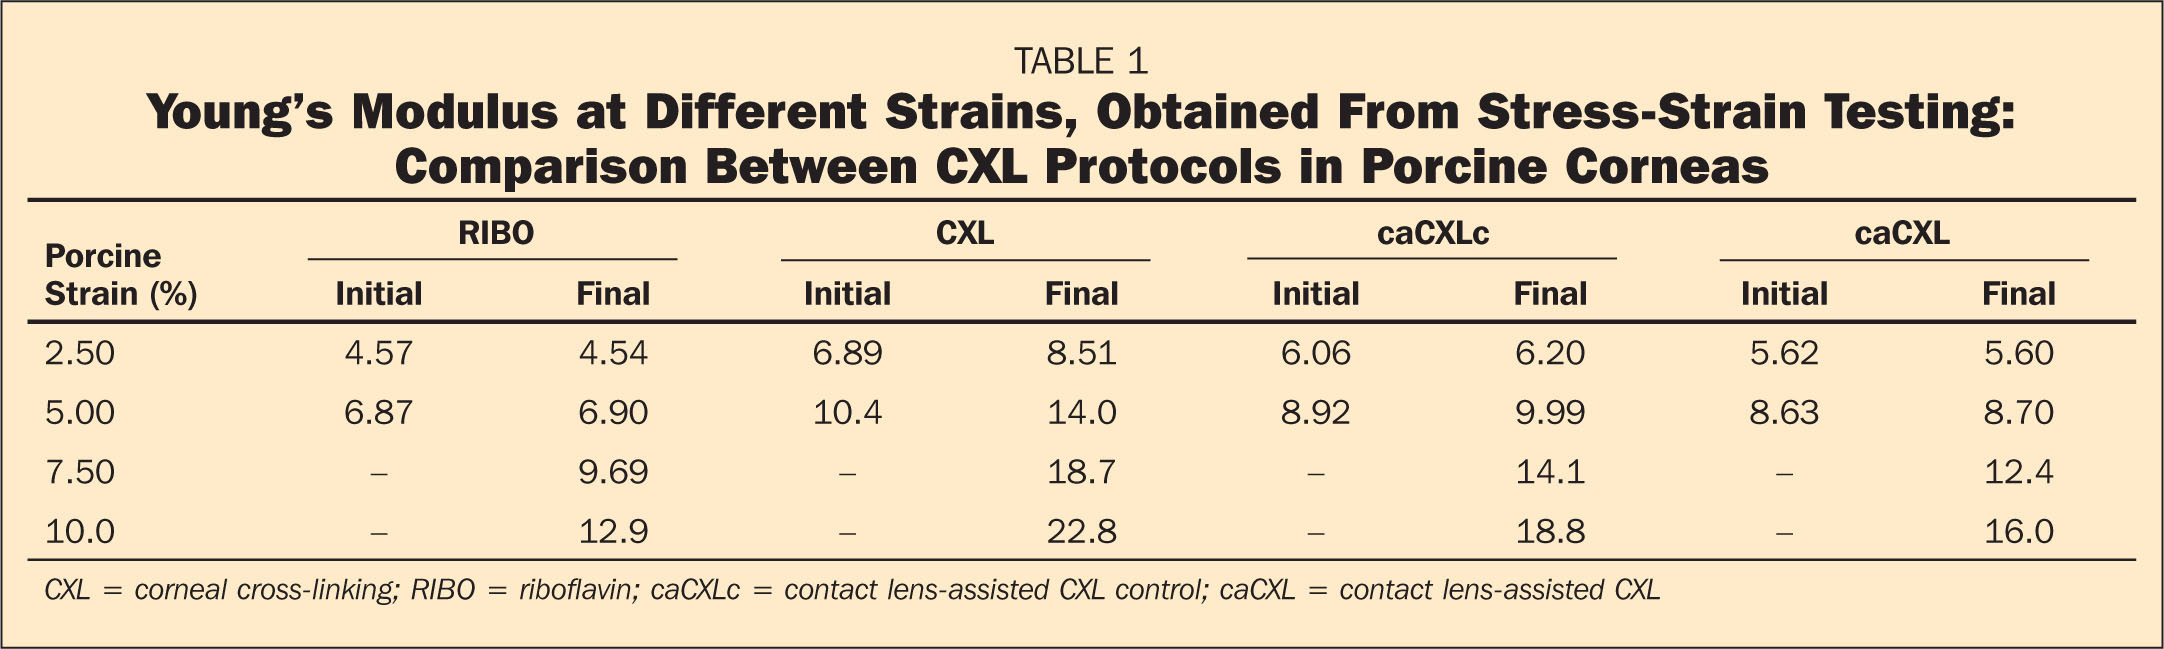 Young's Modulus at Different Strains, Obtained From Stress-Strain Testing: Comparison Between CXL Protocols in Porcine Corneas